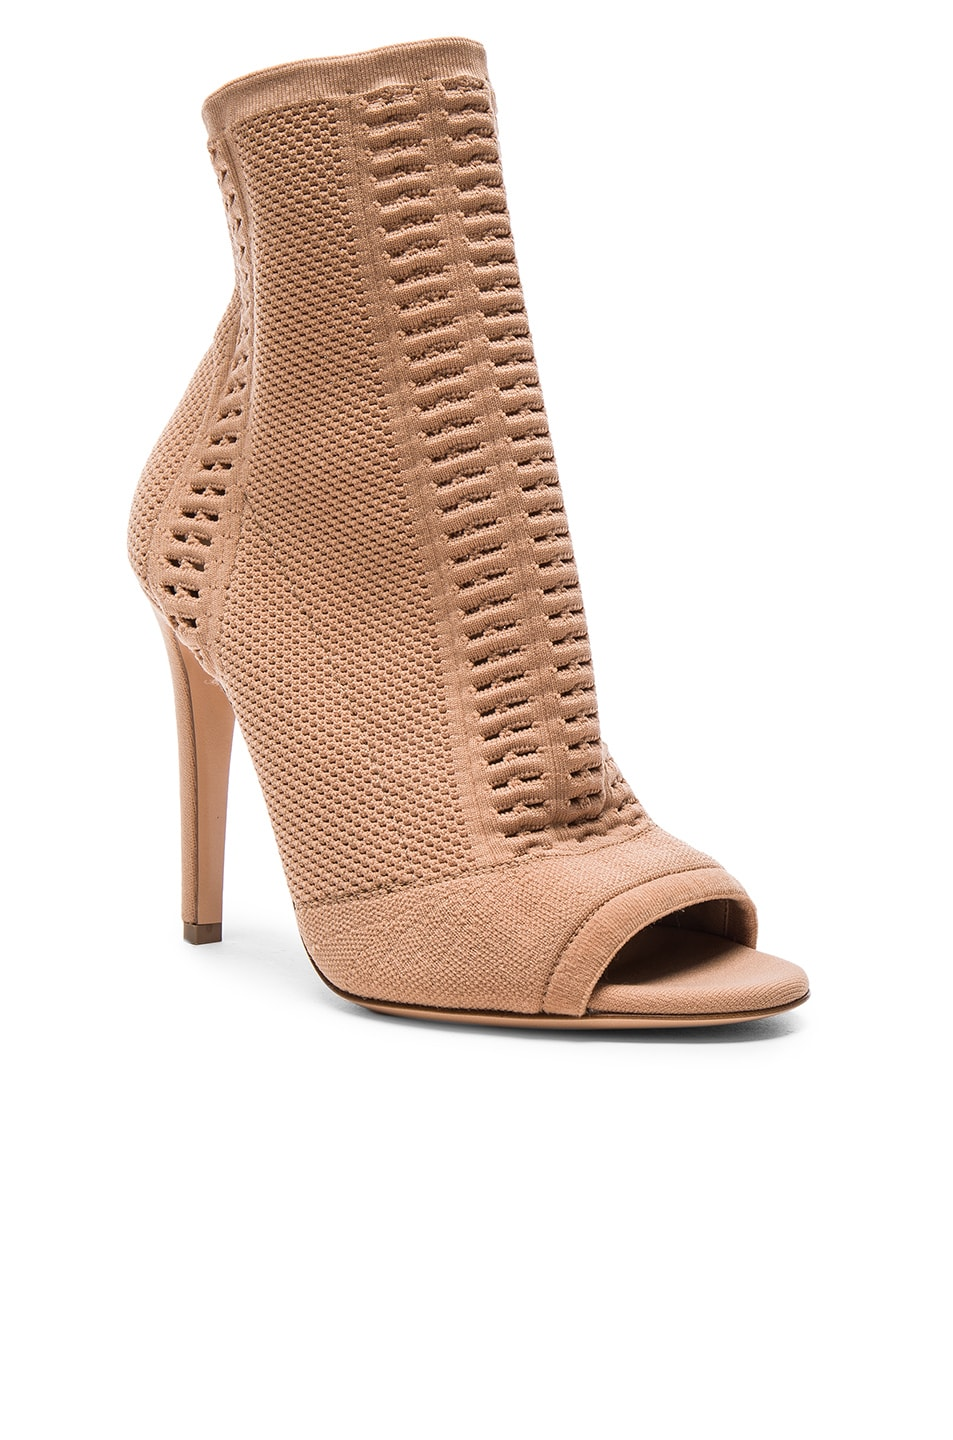 Image 2 of Gianvito Rossi Knit Vires Booties in Praline